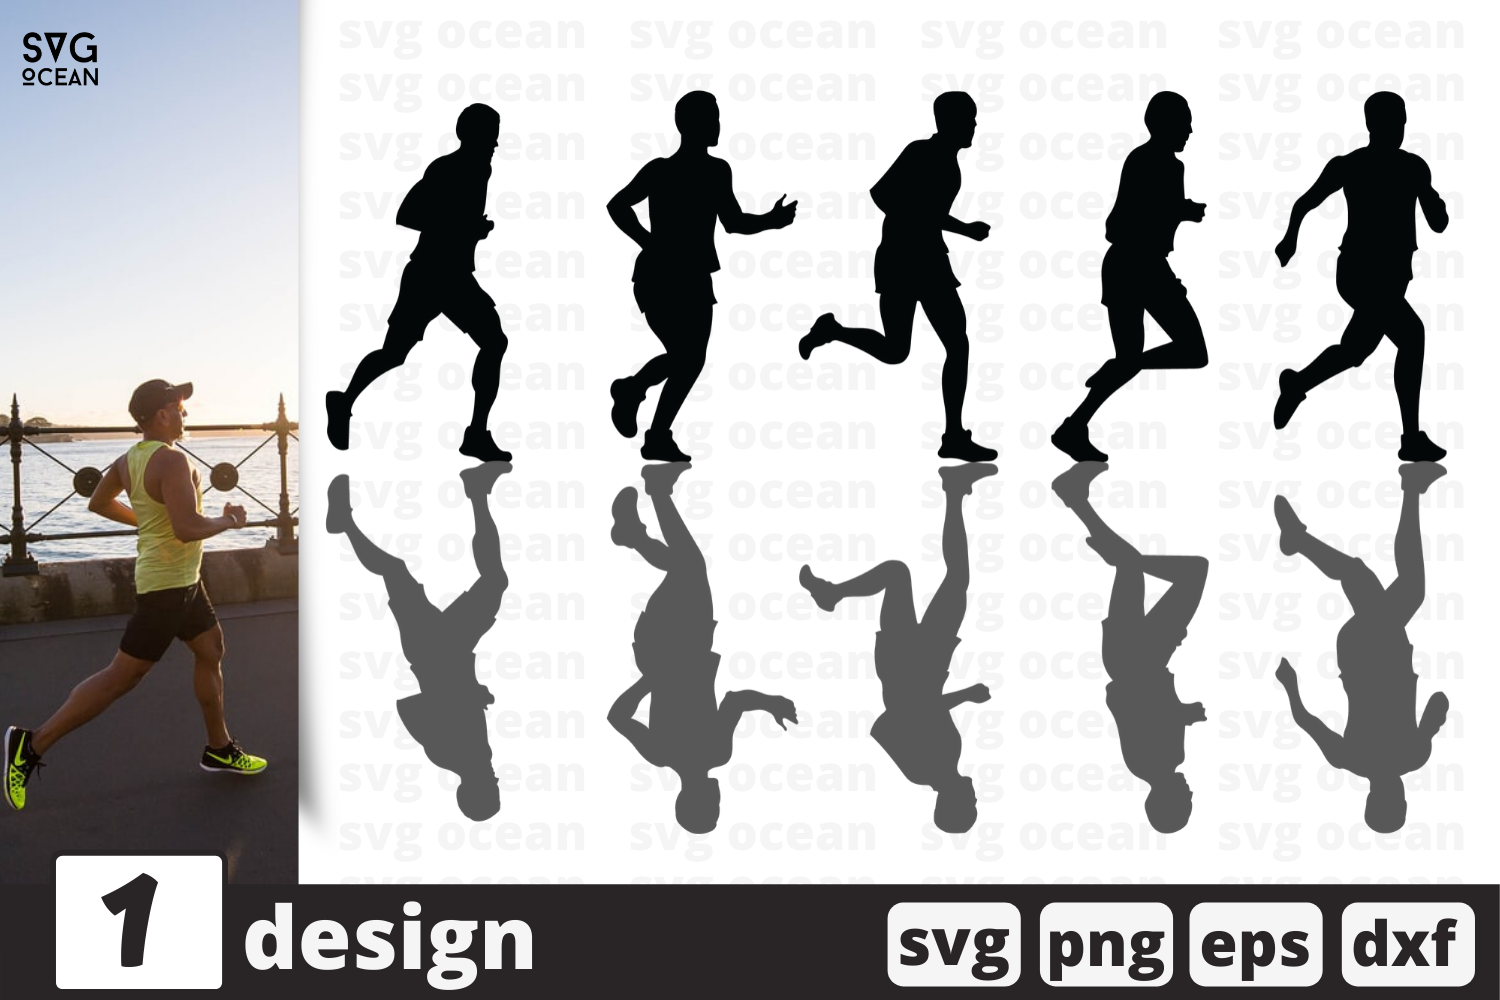 Download Free Run Graphic By Svgocean Creative Fabrica for Cricut Explore, Silhouette and other cutting machines.